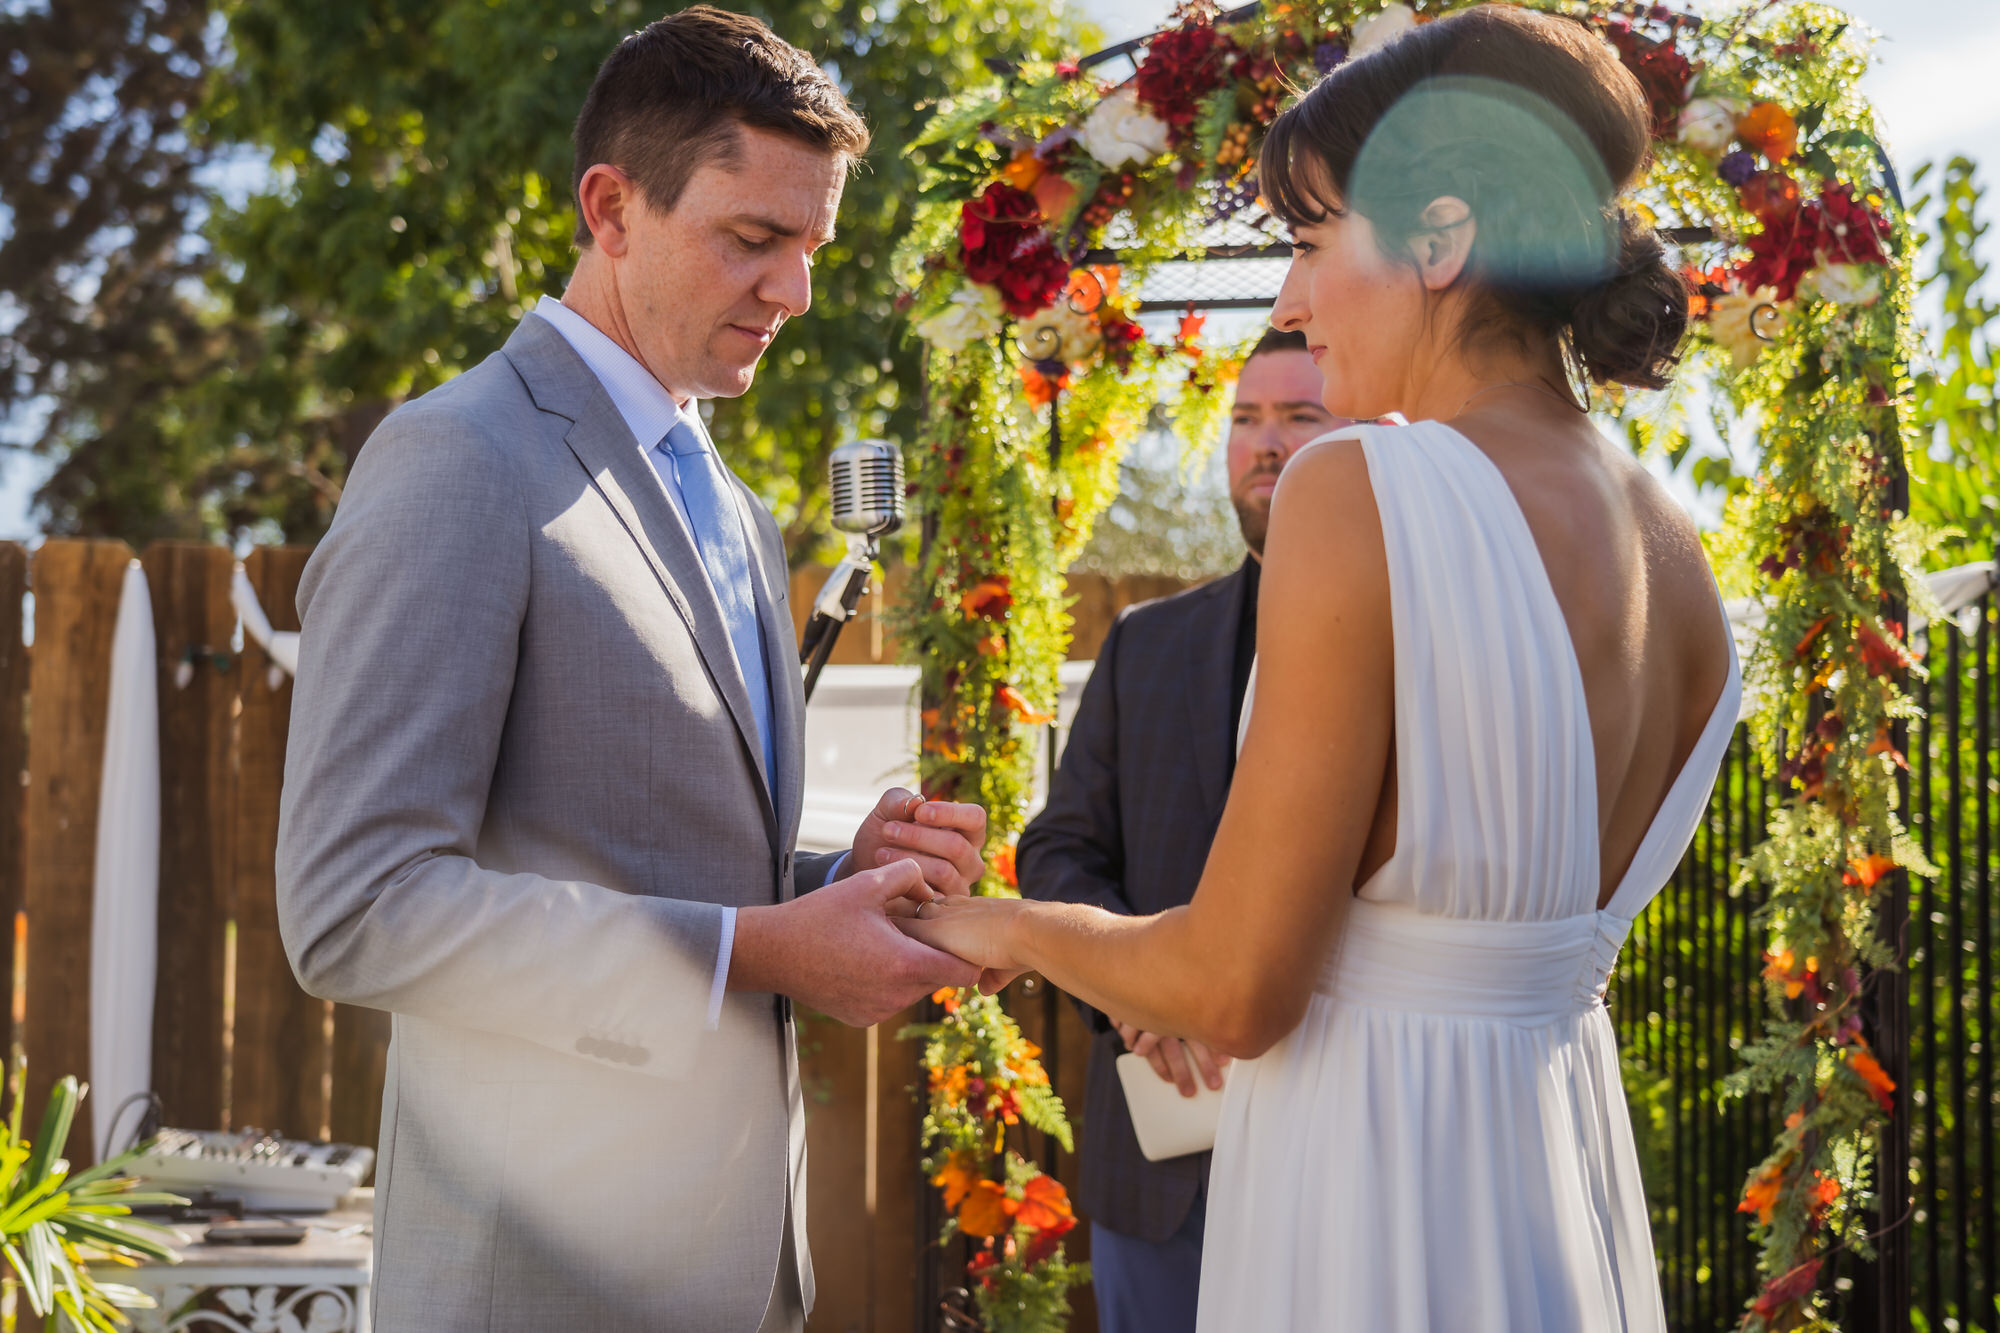 carlsbad_wedding_014